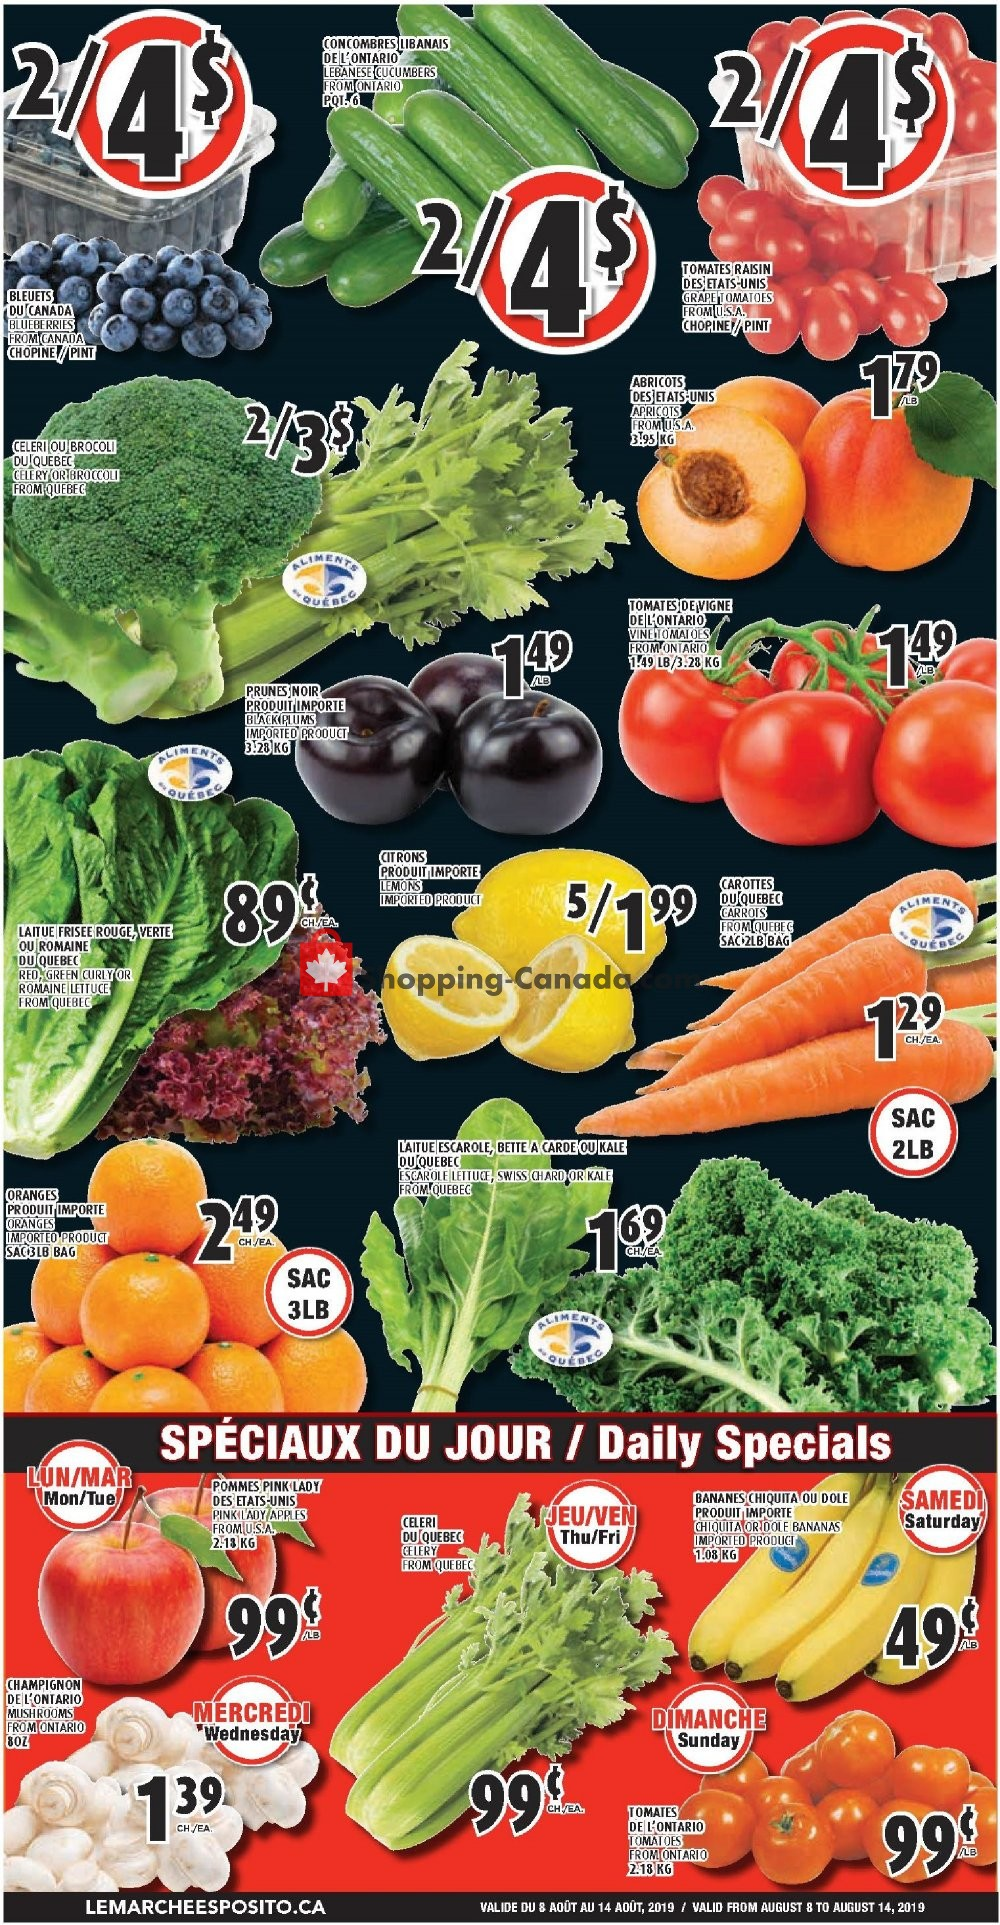 Flyer Le Marché Esposito Canada - from Thursday August 8, 2019 to Wednesday August 14, 2019